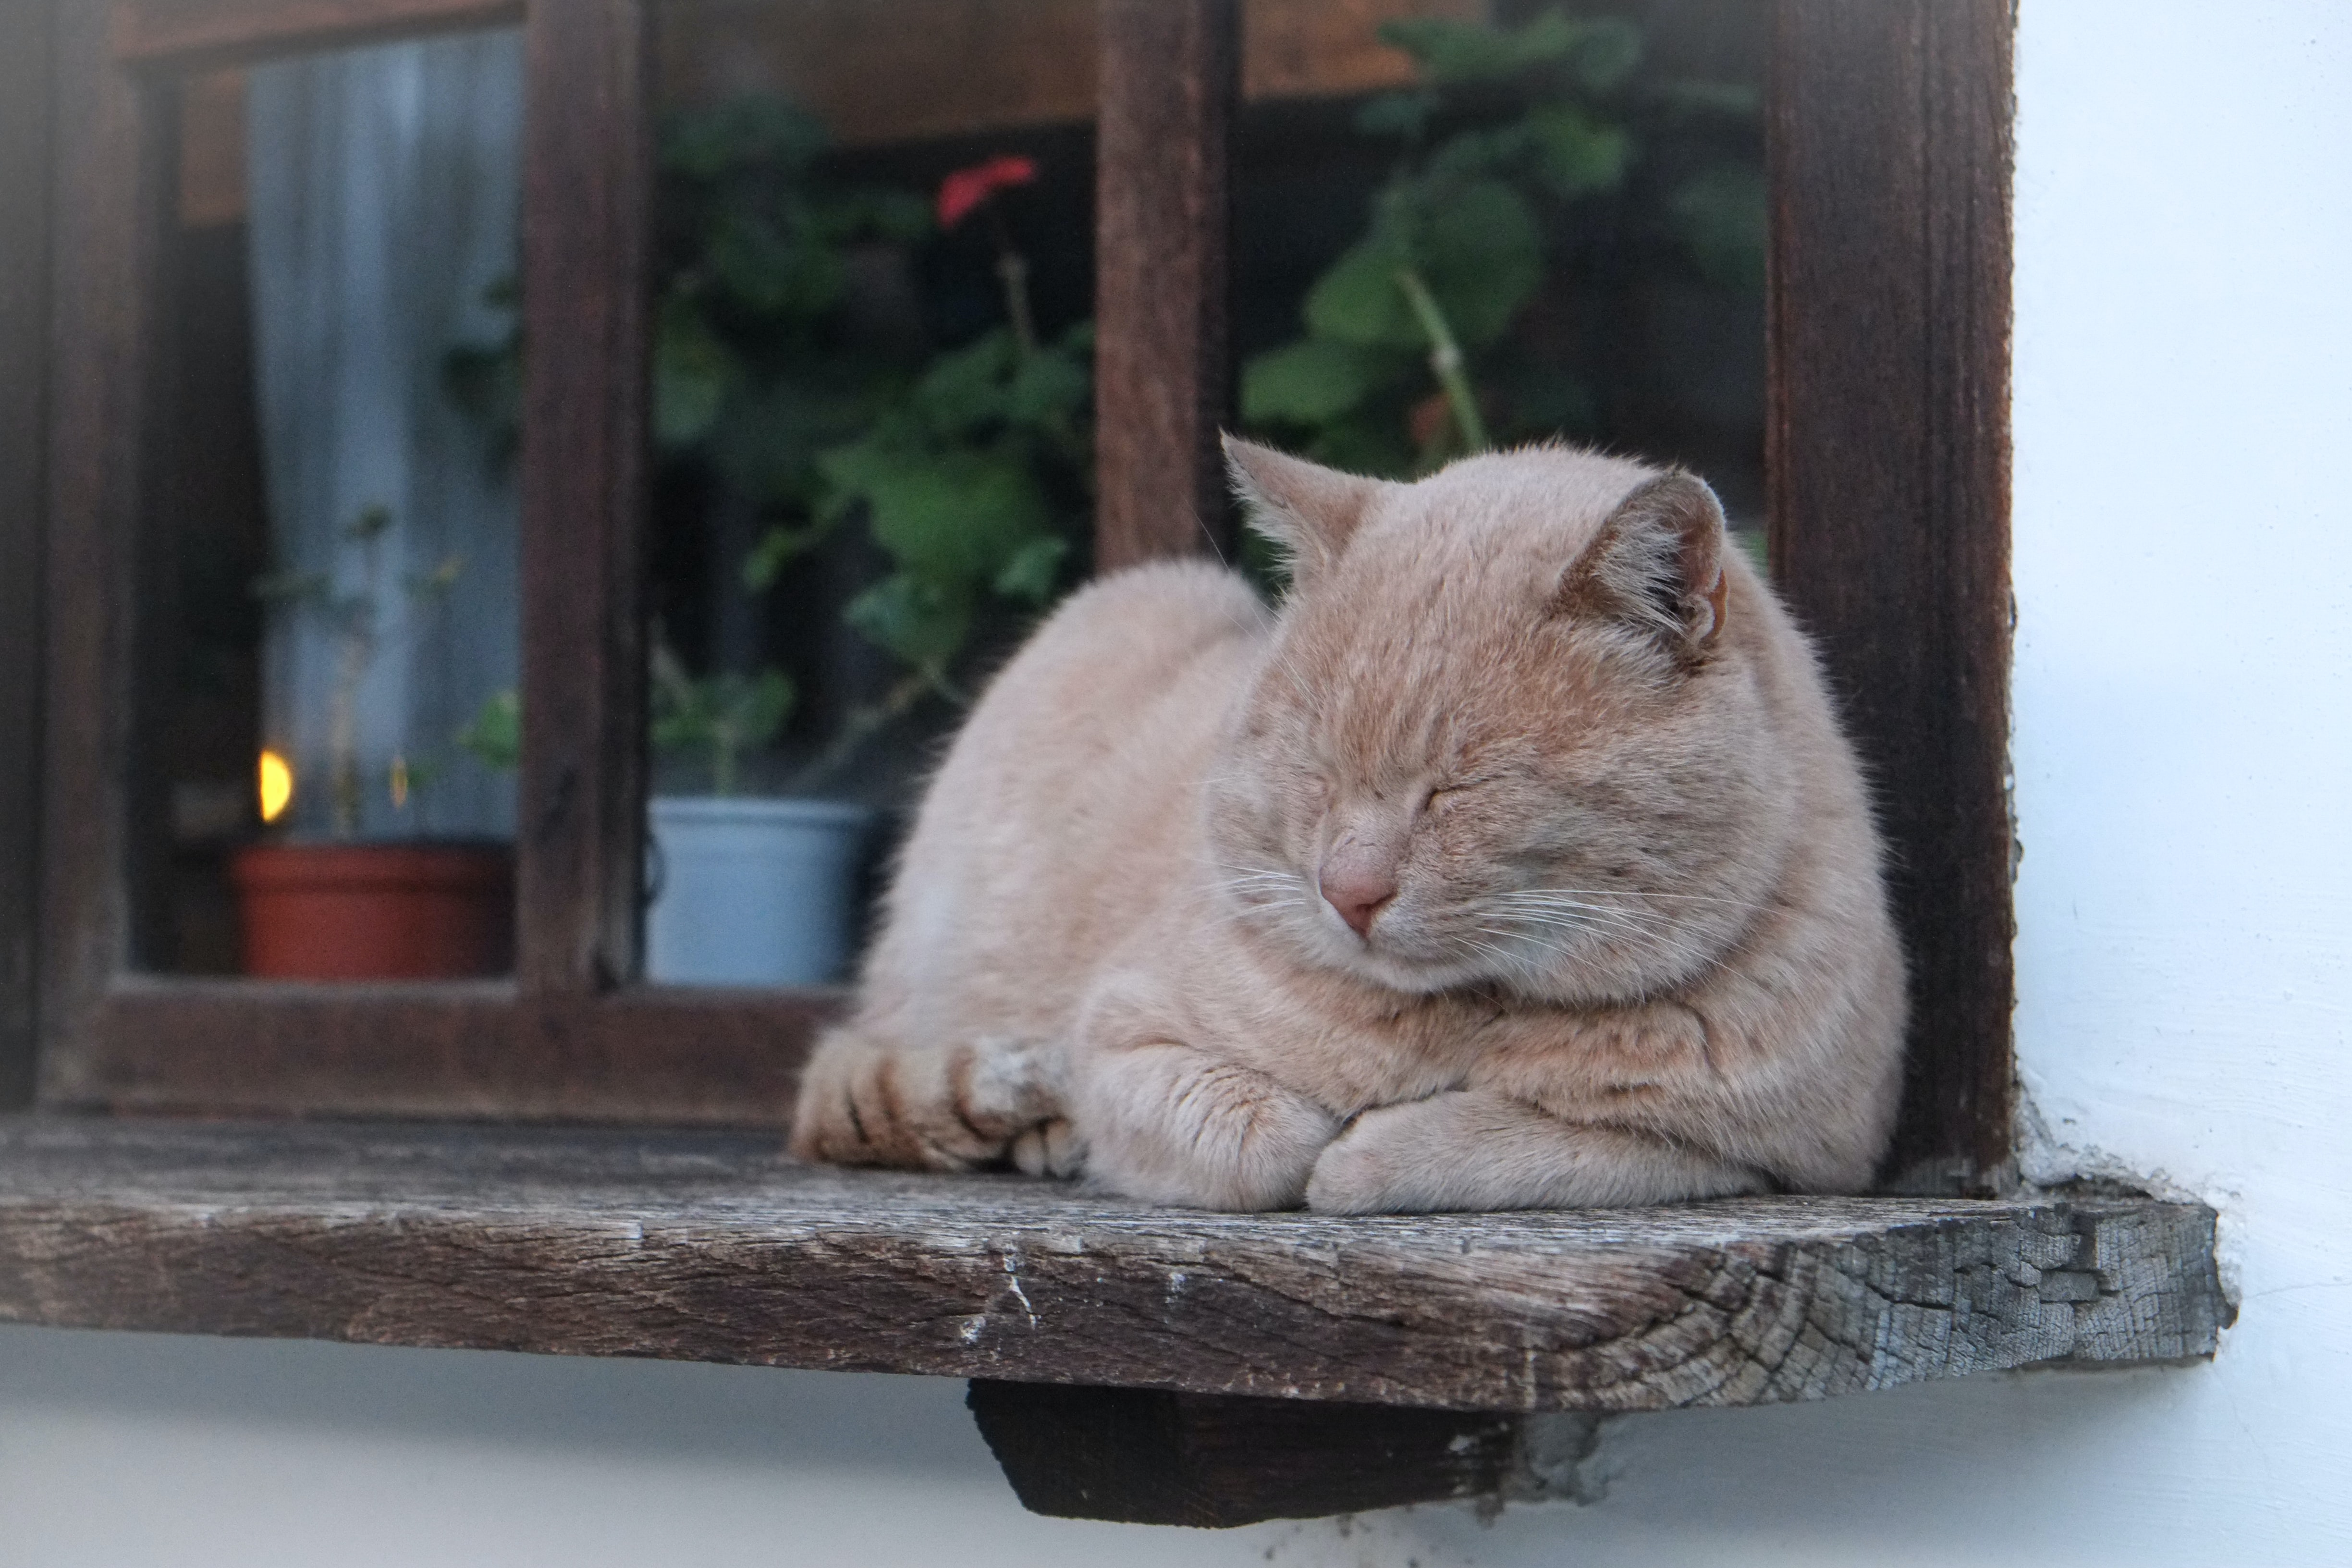 A ginger tomcat sleeping on a wooden windowsill outside